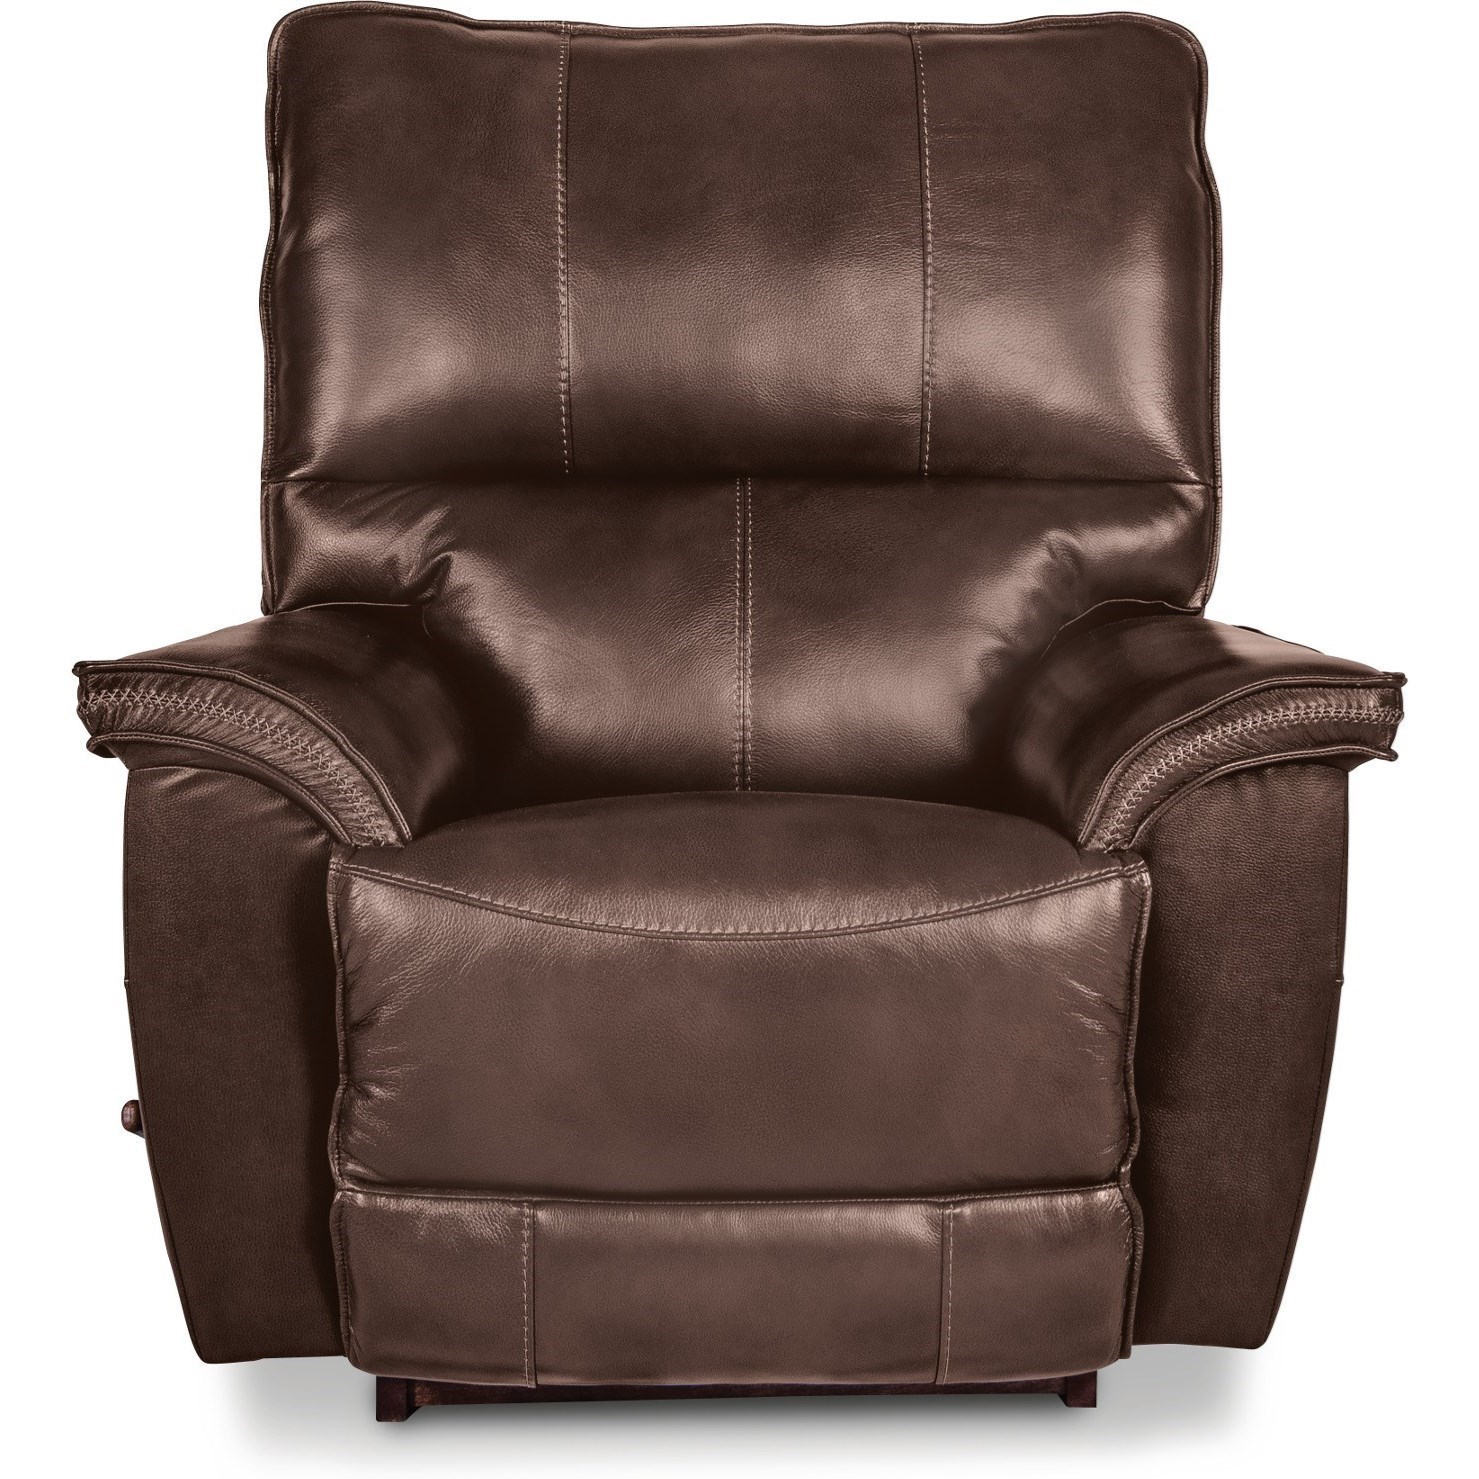 La Z Boy Norris Casual Rocker Recliner | Adcock Furniture